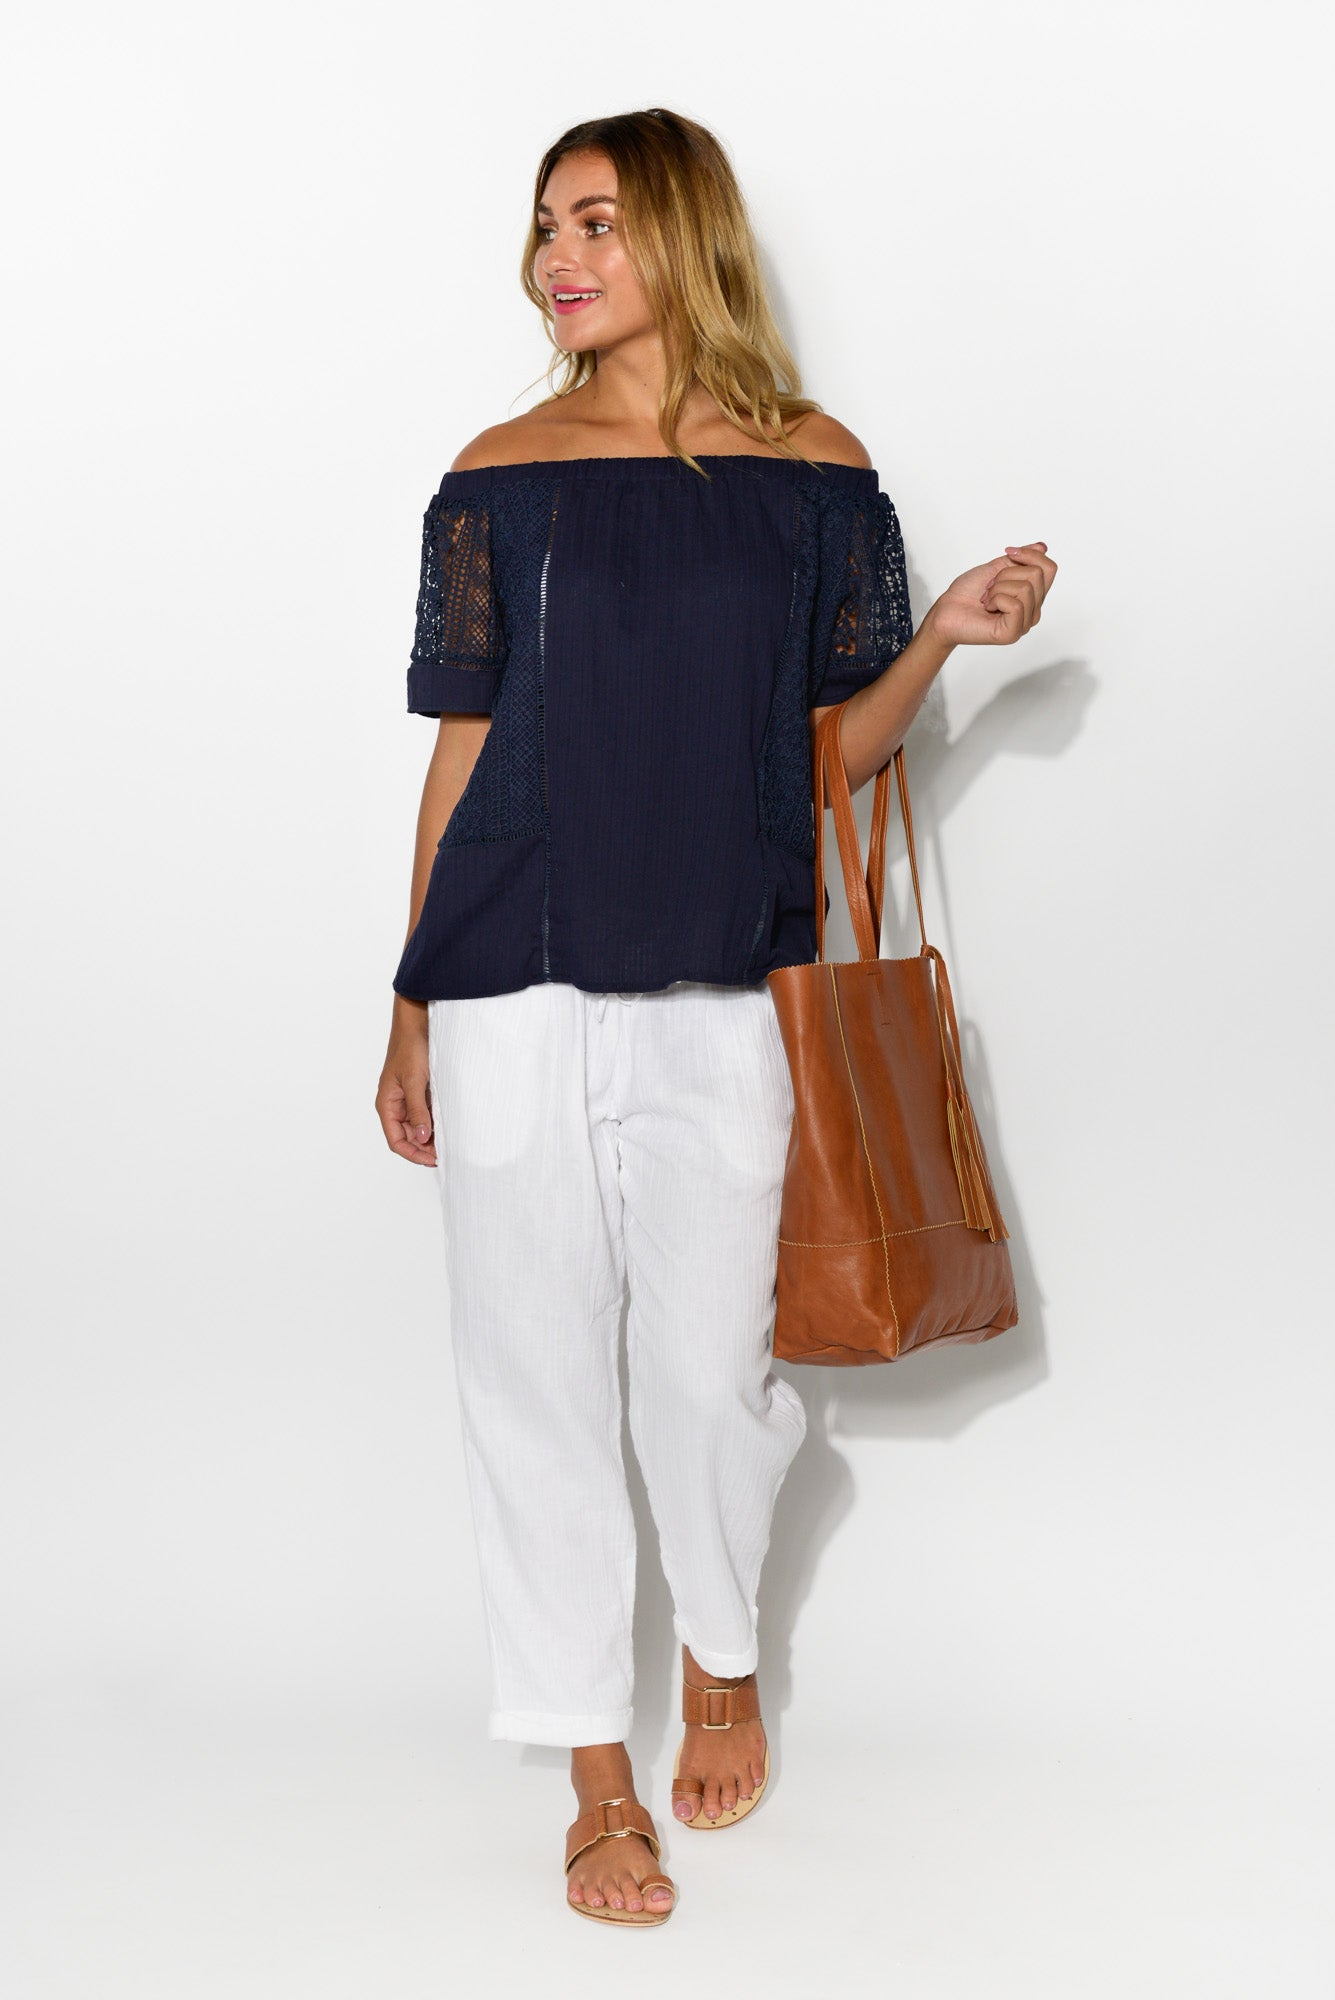 Jessie Navy Off Shoulder Top - Blue Bungalow